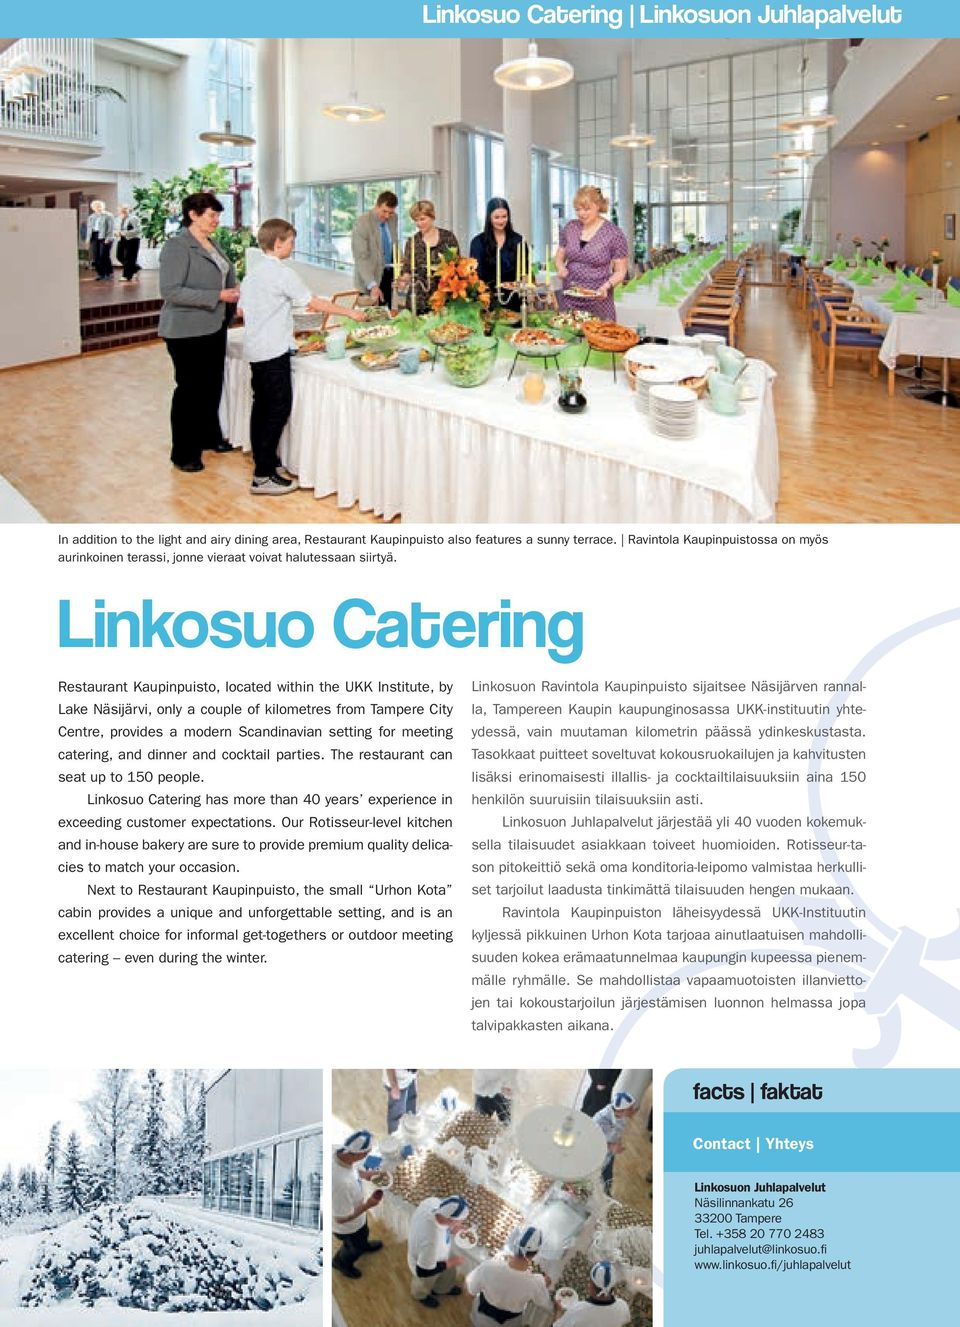 Linkosuo Catering Restaurant Kaupinpuisto, located within the UKK Institute, by Lake Näsijärvi, only a couple of kilometres from Tampere City Centre, provides a modern Scandinavian setting for